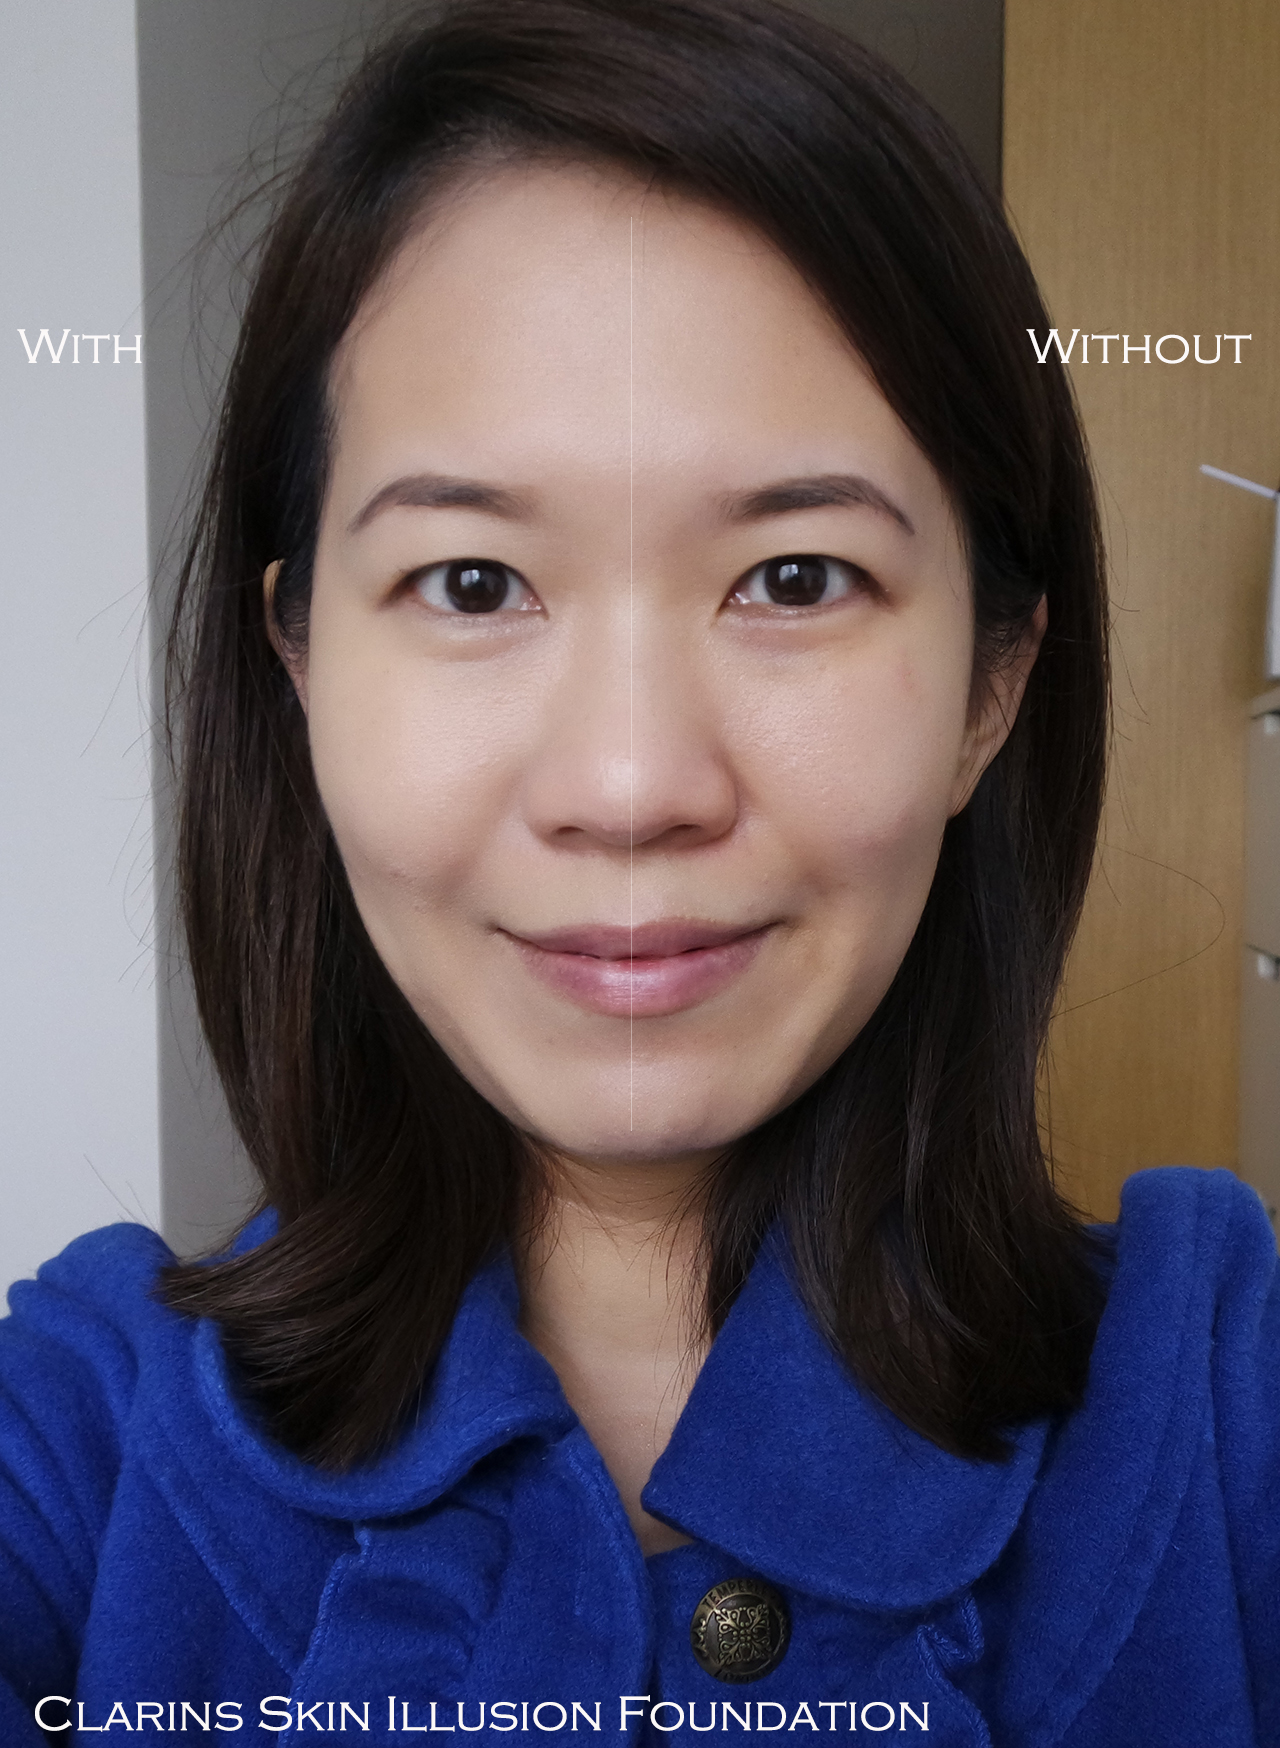 Clarins Skin Illusion Foundation before after comparison